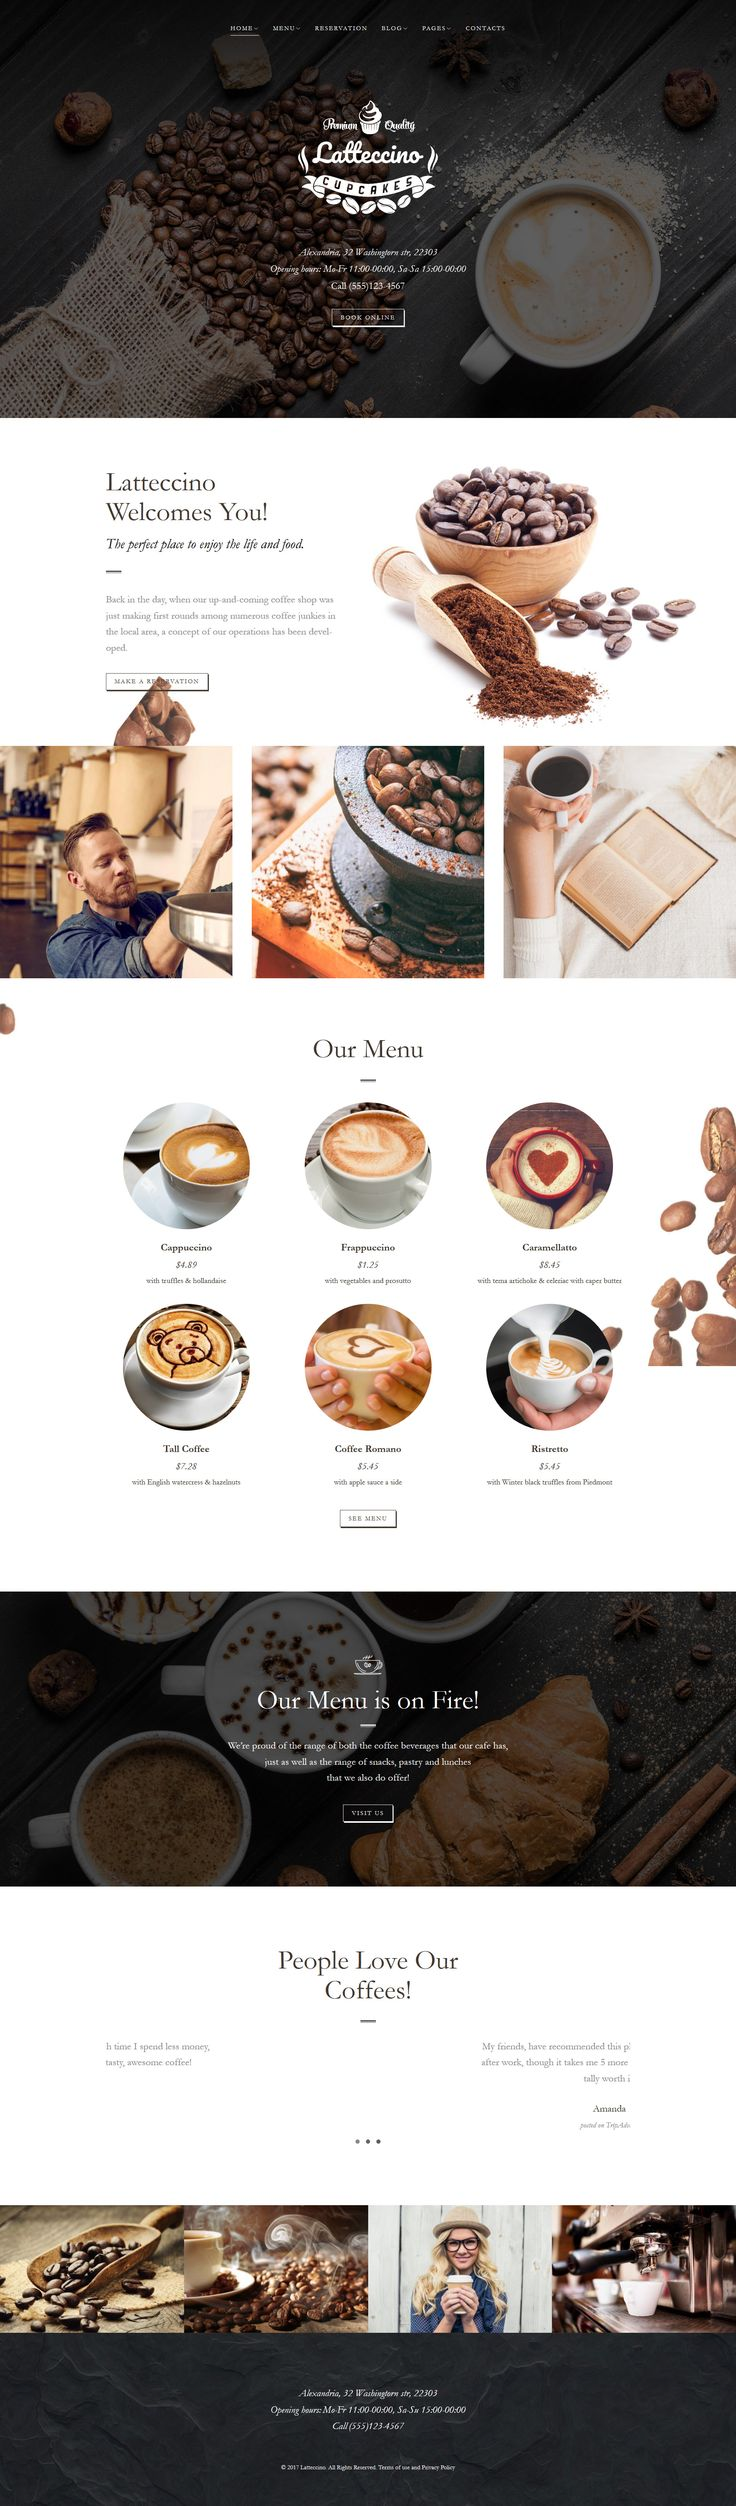 WordPress Template , Latteccino - Coffee Shop